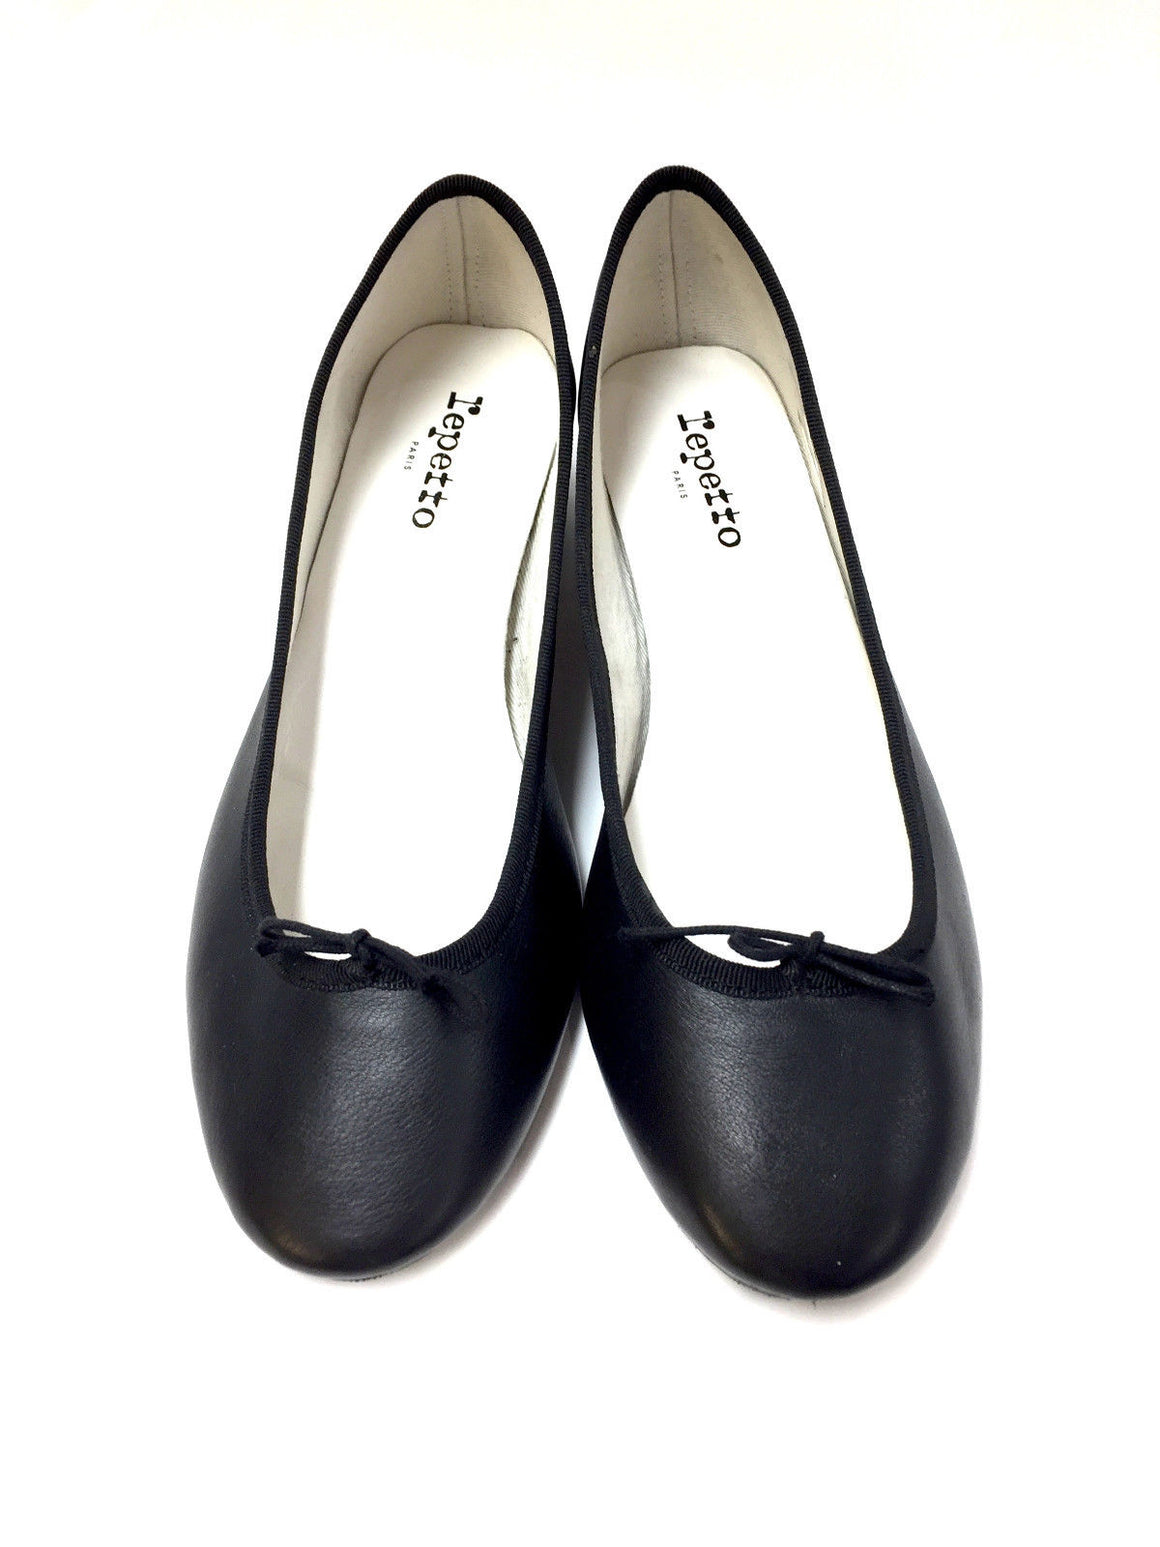 REPETTO Black Leather Low-Block Heel Ballet Pumps Shoes Sz40